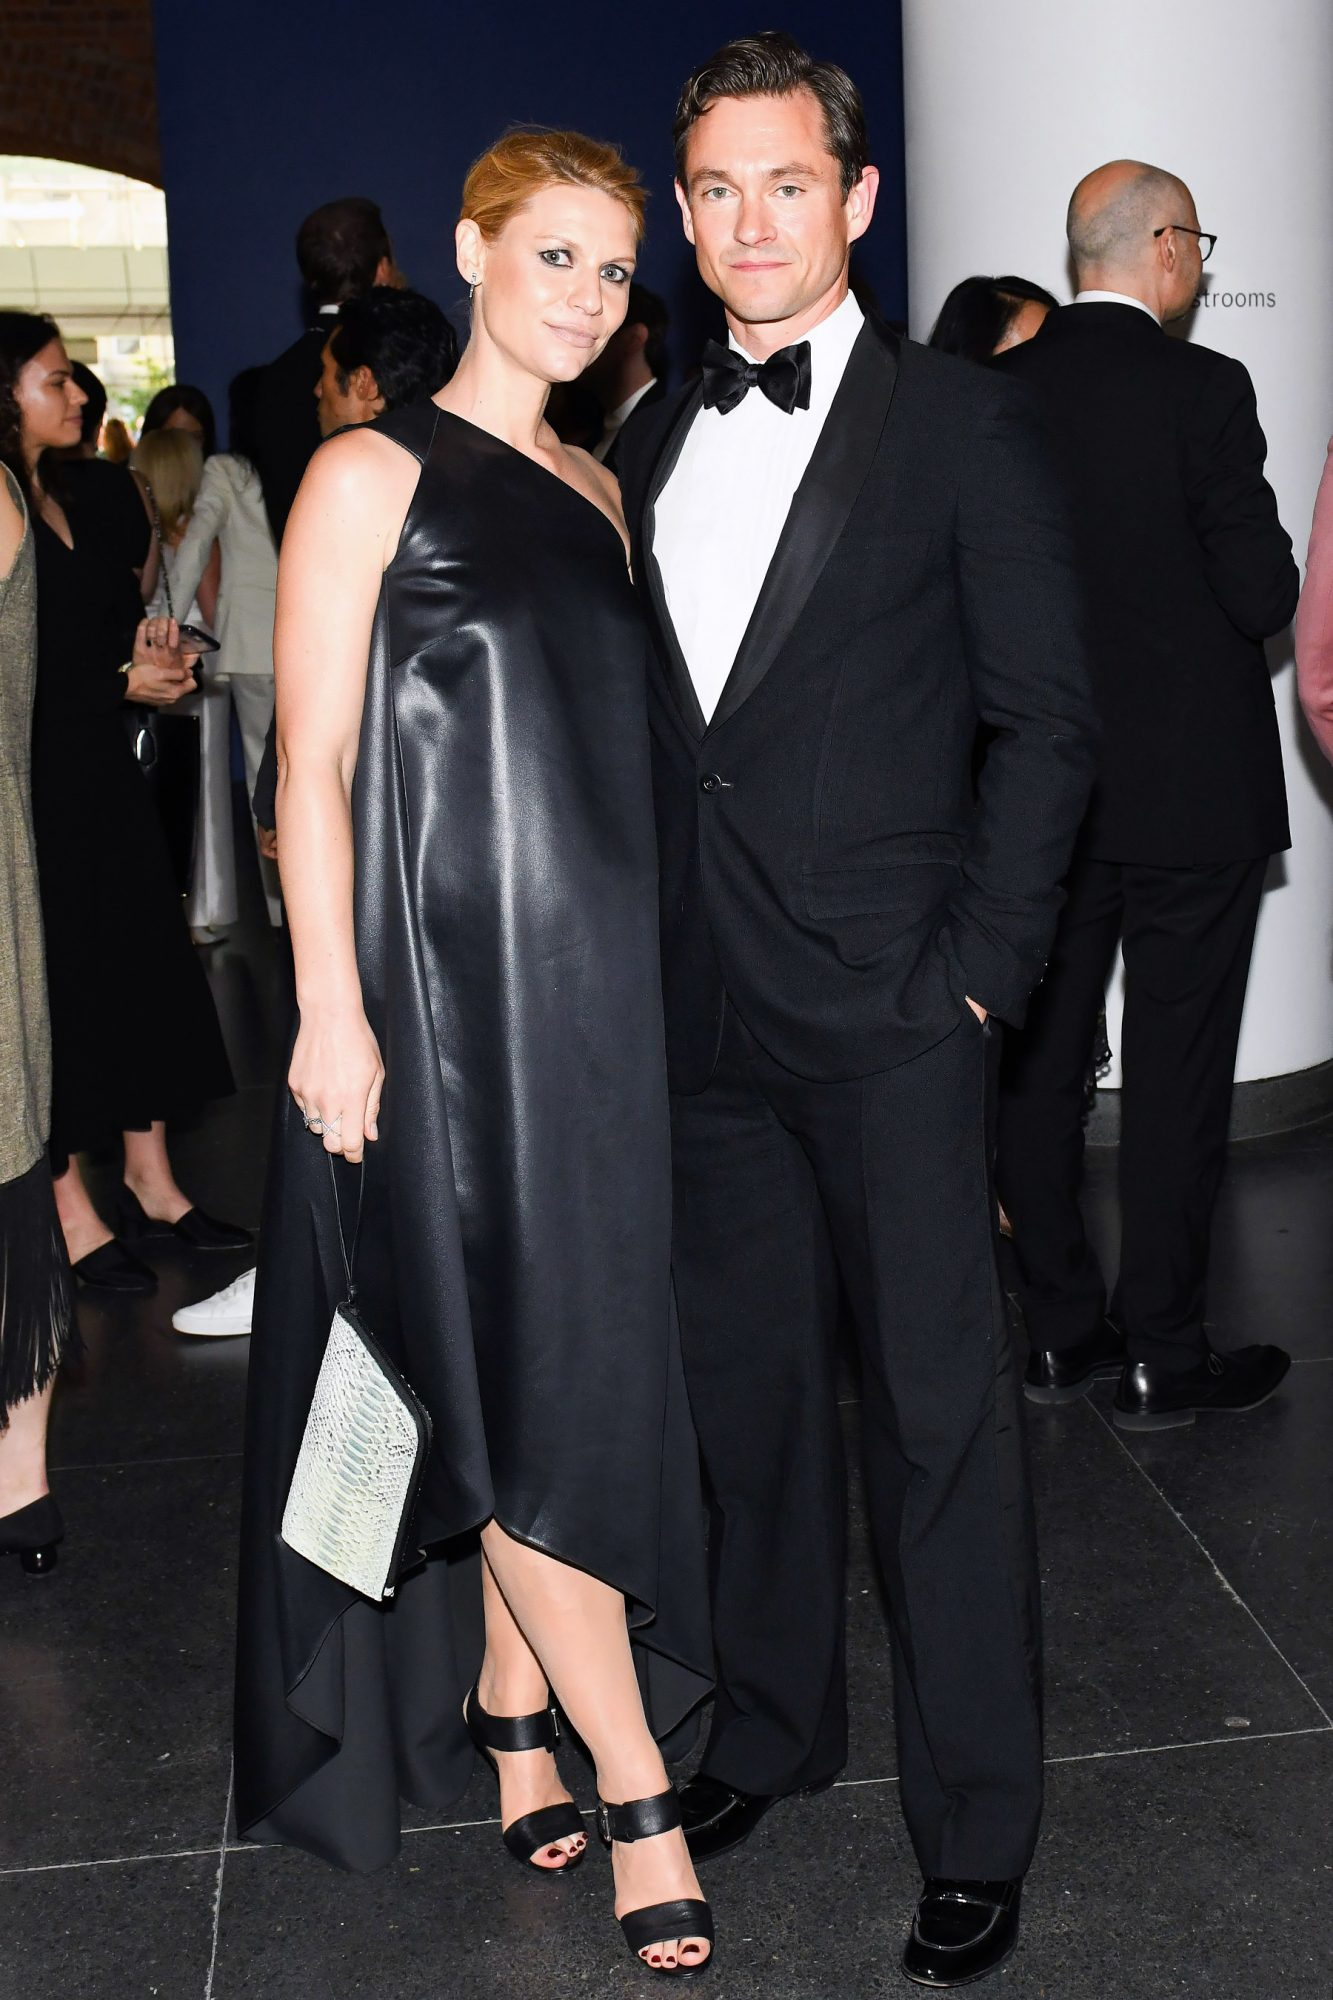 CFDA Fashion Awards, Cocktails, New York, USA - 04 Jun 2018